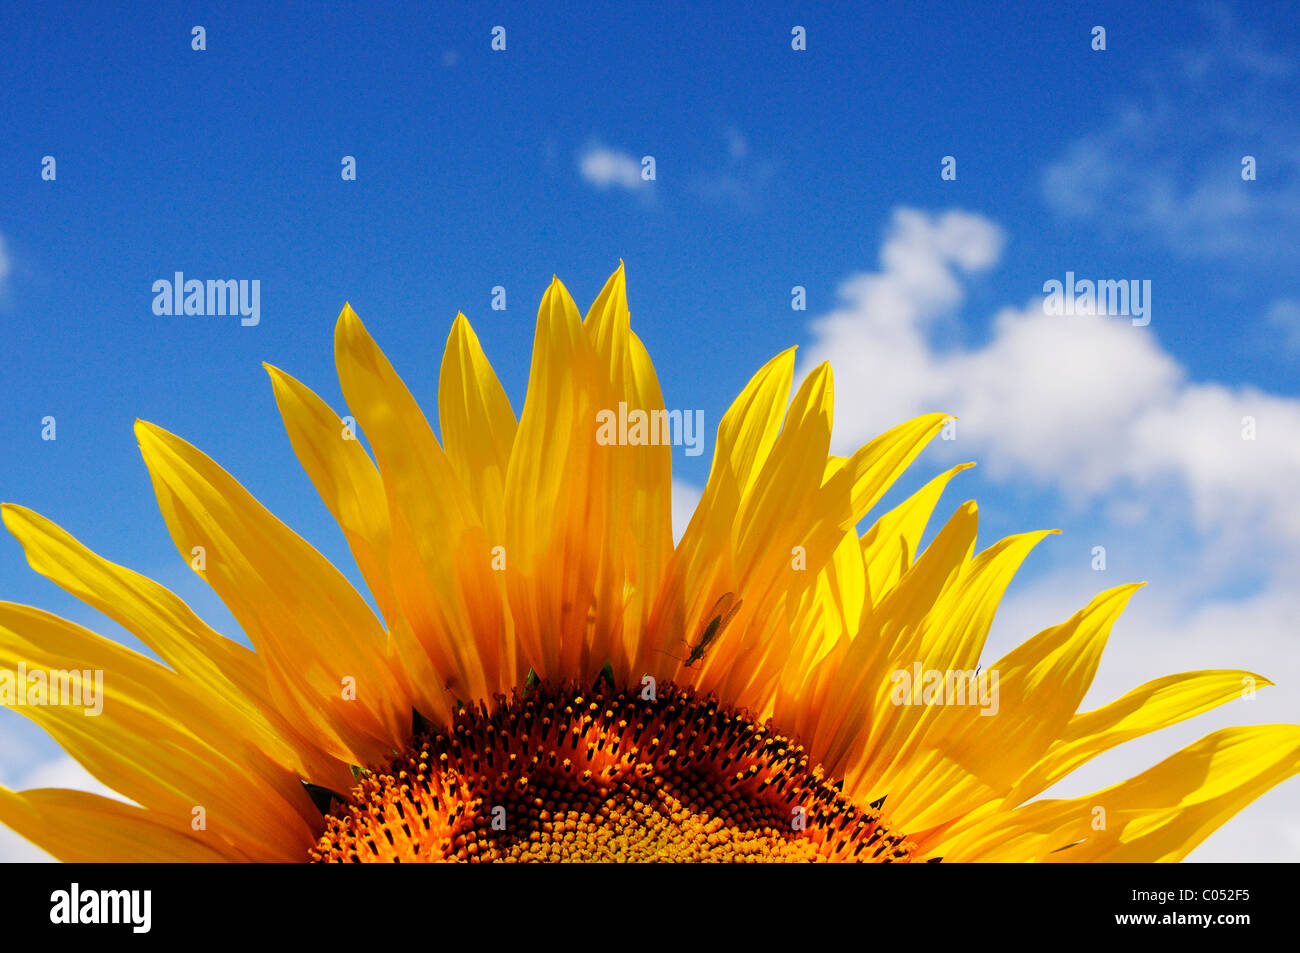 Sunflowers against a clear blue sky - Stock Image